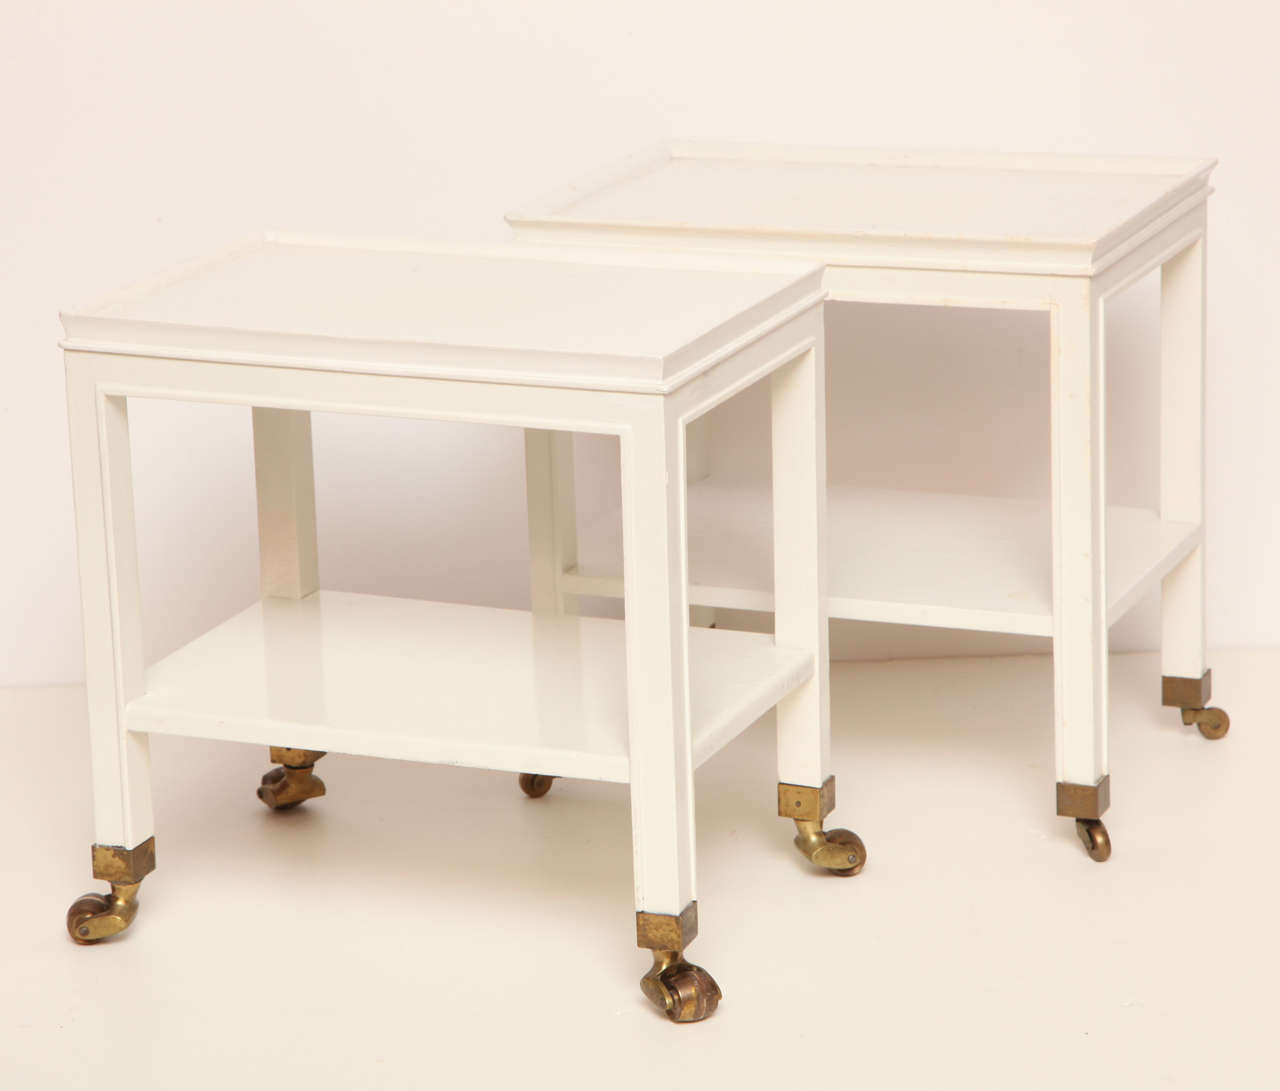 Three Telephone Tables by Jansen from the Collection of Brooke Astor 8